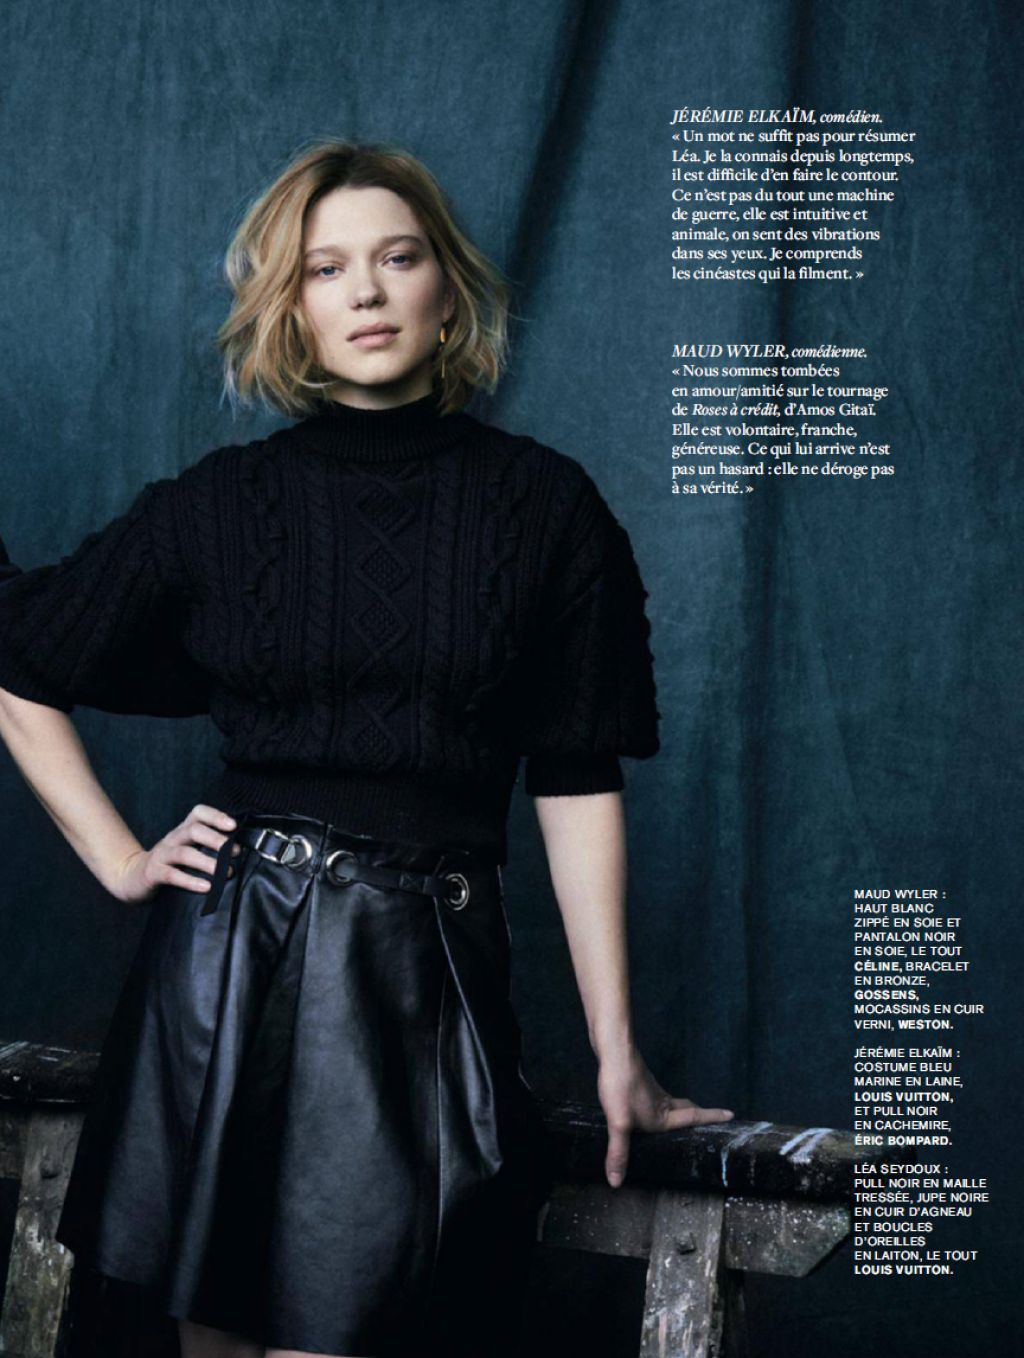 L 233 A Seydoux L Express Styles Magazine May 2016 Issue And